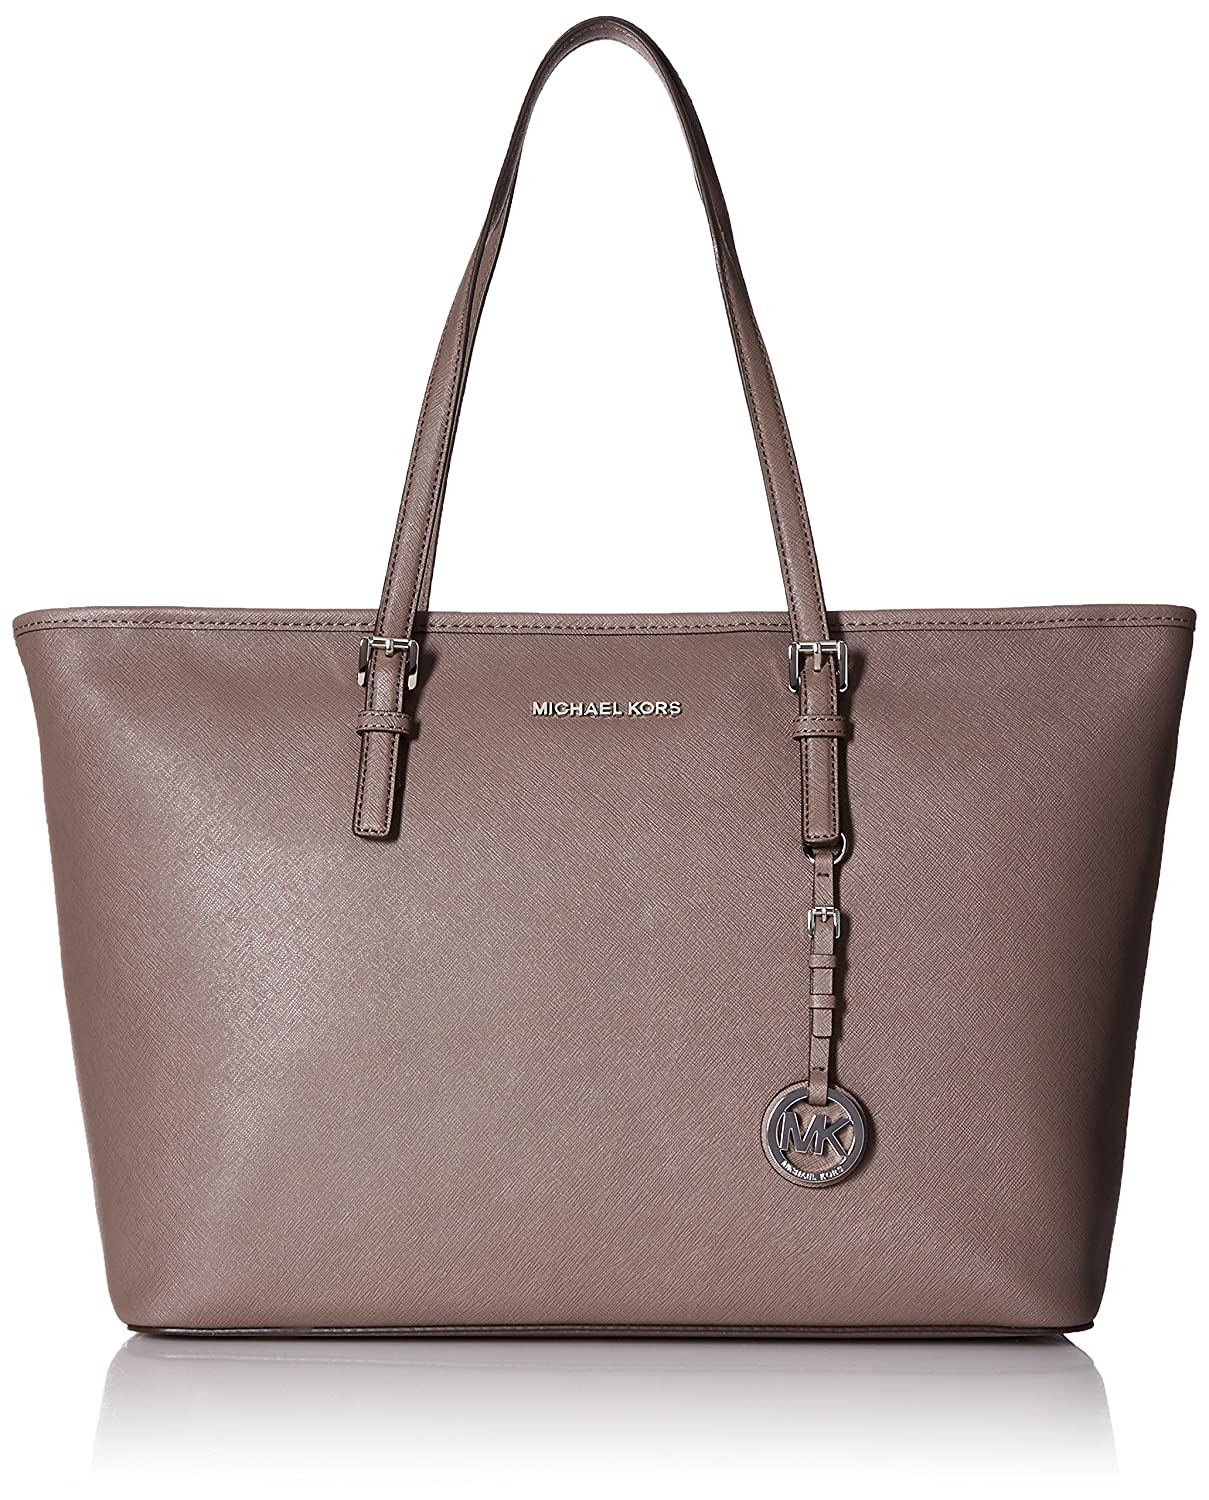 1781eaef68b5ec Michael Kors Jet Set Travel Medium Saffiano Leather Top-Zip, Borsa Tote  Donna, Grigio (Cinder), 43x30x12 cm (W x H x L): Amazon.it: Scarpe e borse